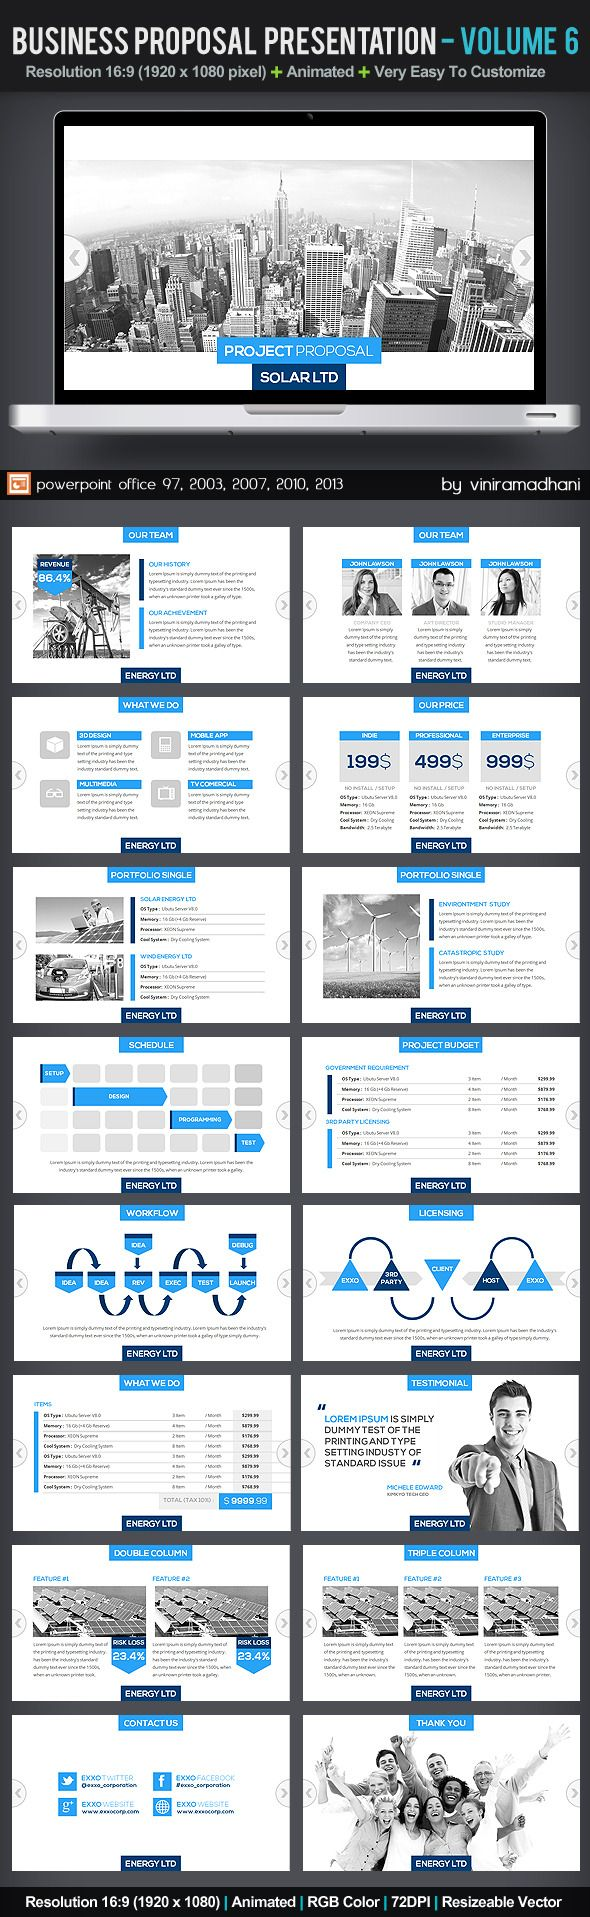 business proposal presentation volume 6 pinterest business